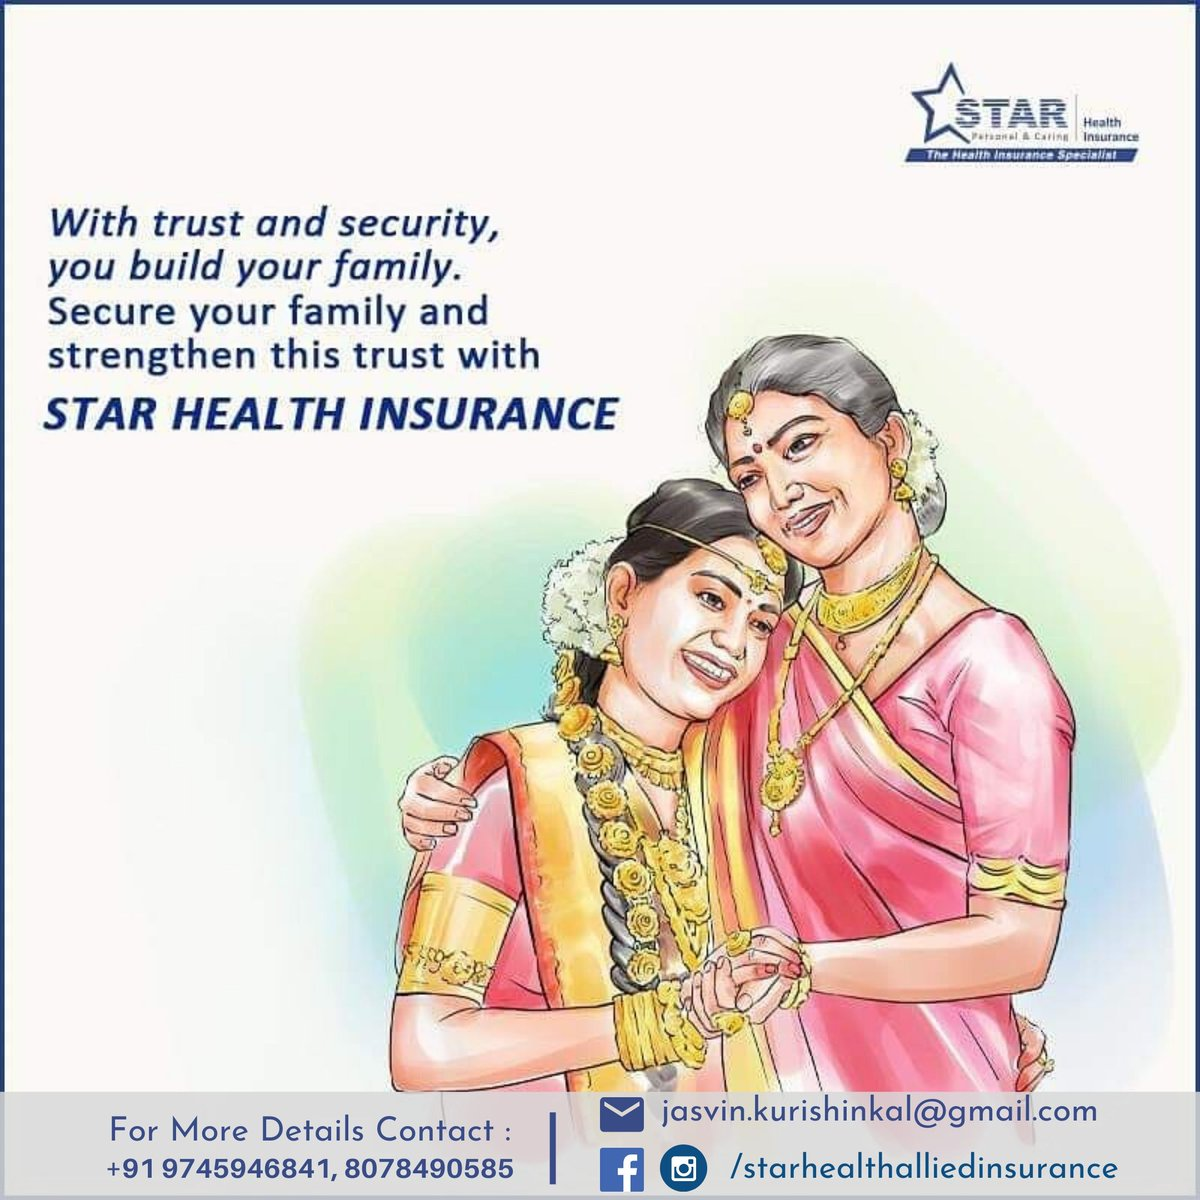 Star Health Insurance  For more contact : +91 9745946841 Or 8078490585 or Click this Link : https://forms.gle/a8Gn7RM3tv71cU8P6…  #starhealthinsurance #healthinsurance #starhealth #insurance #family #familytime #familyiseverything #familygoals #securedfamily #healthyfamily #happymomentspic.twitter.com/NFHW9aosOa